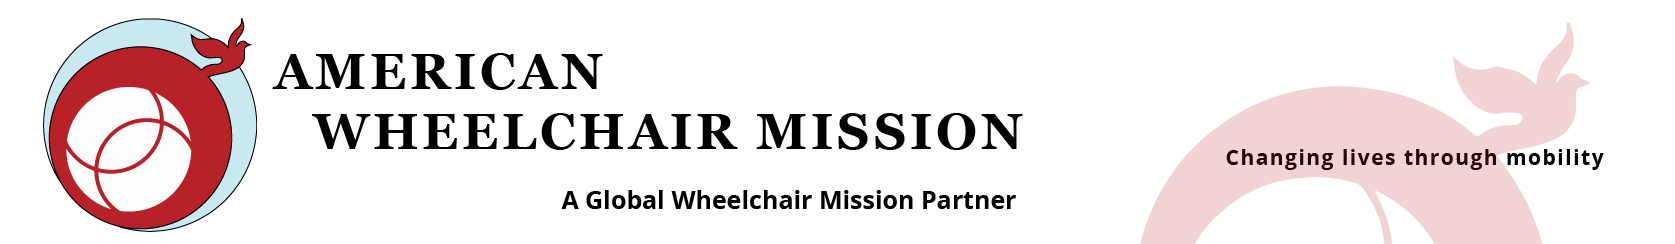 American Wheelchair Mission